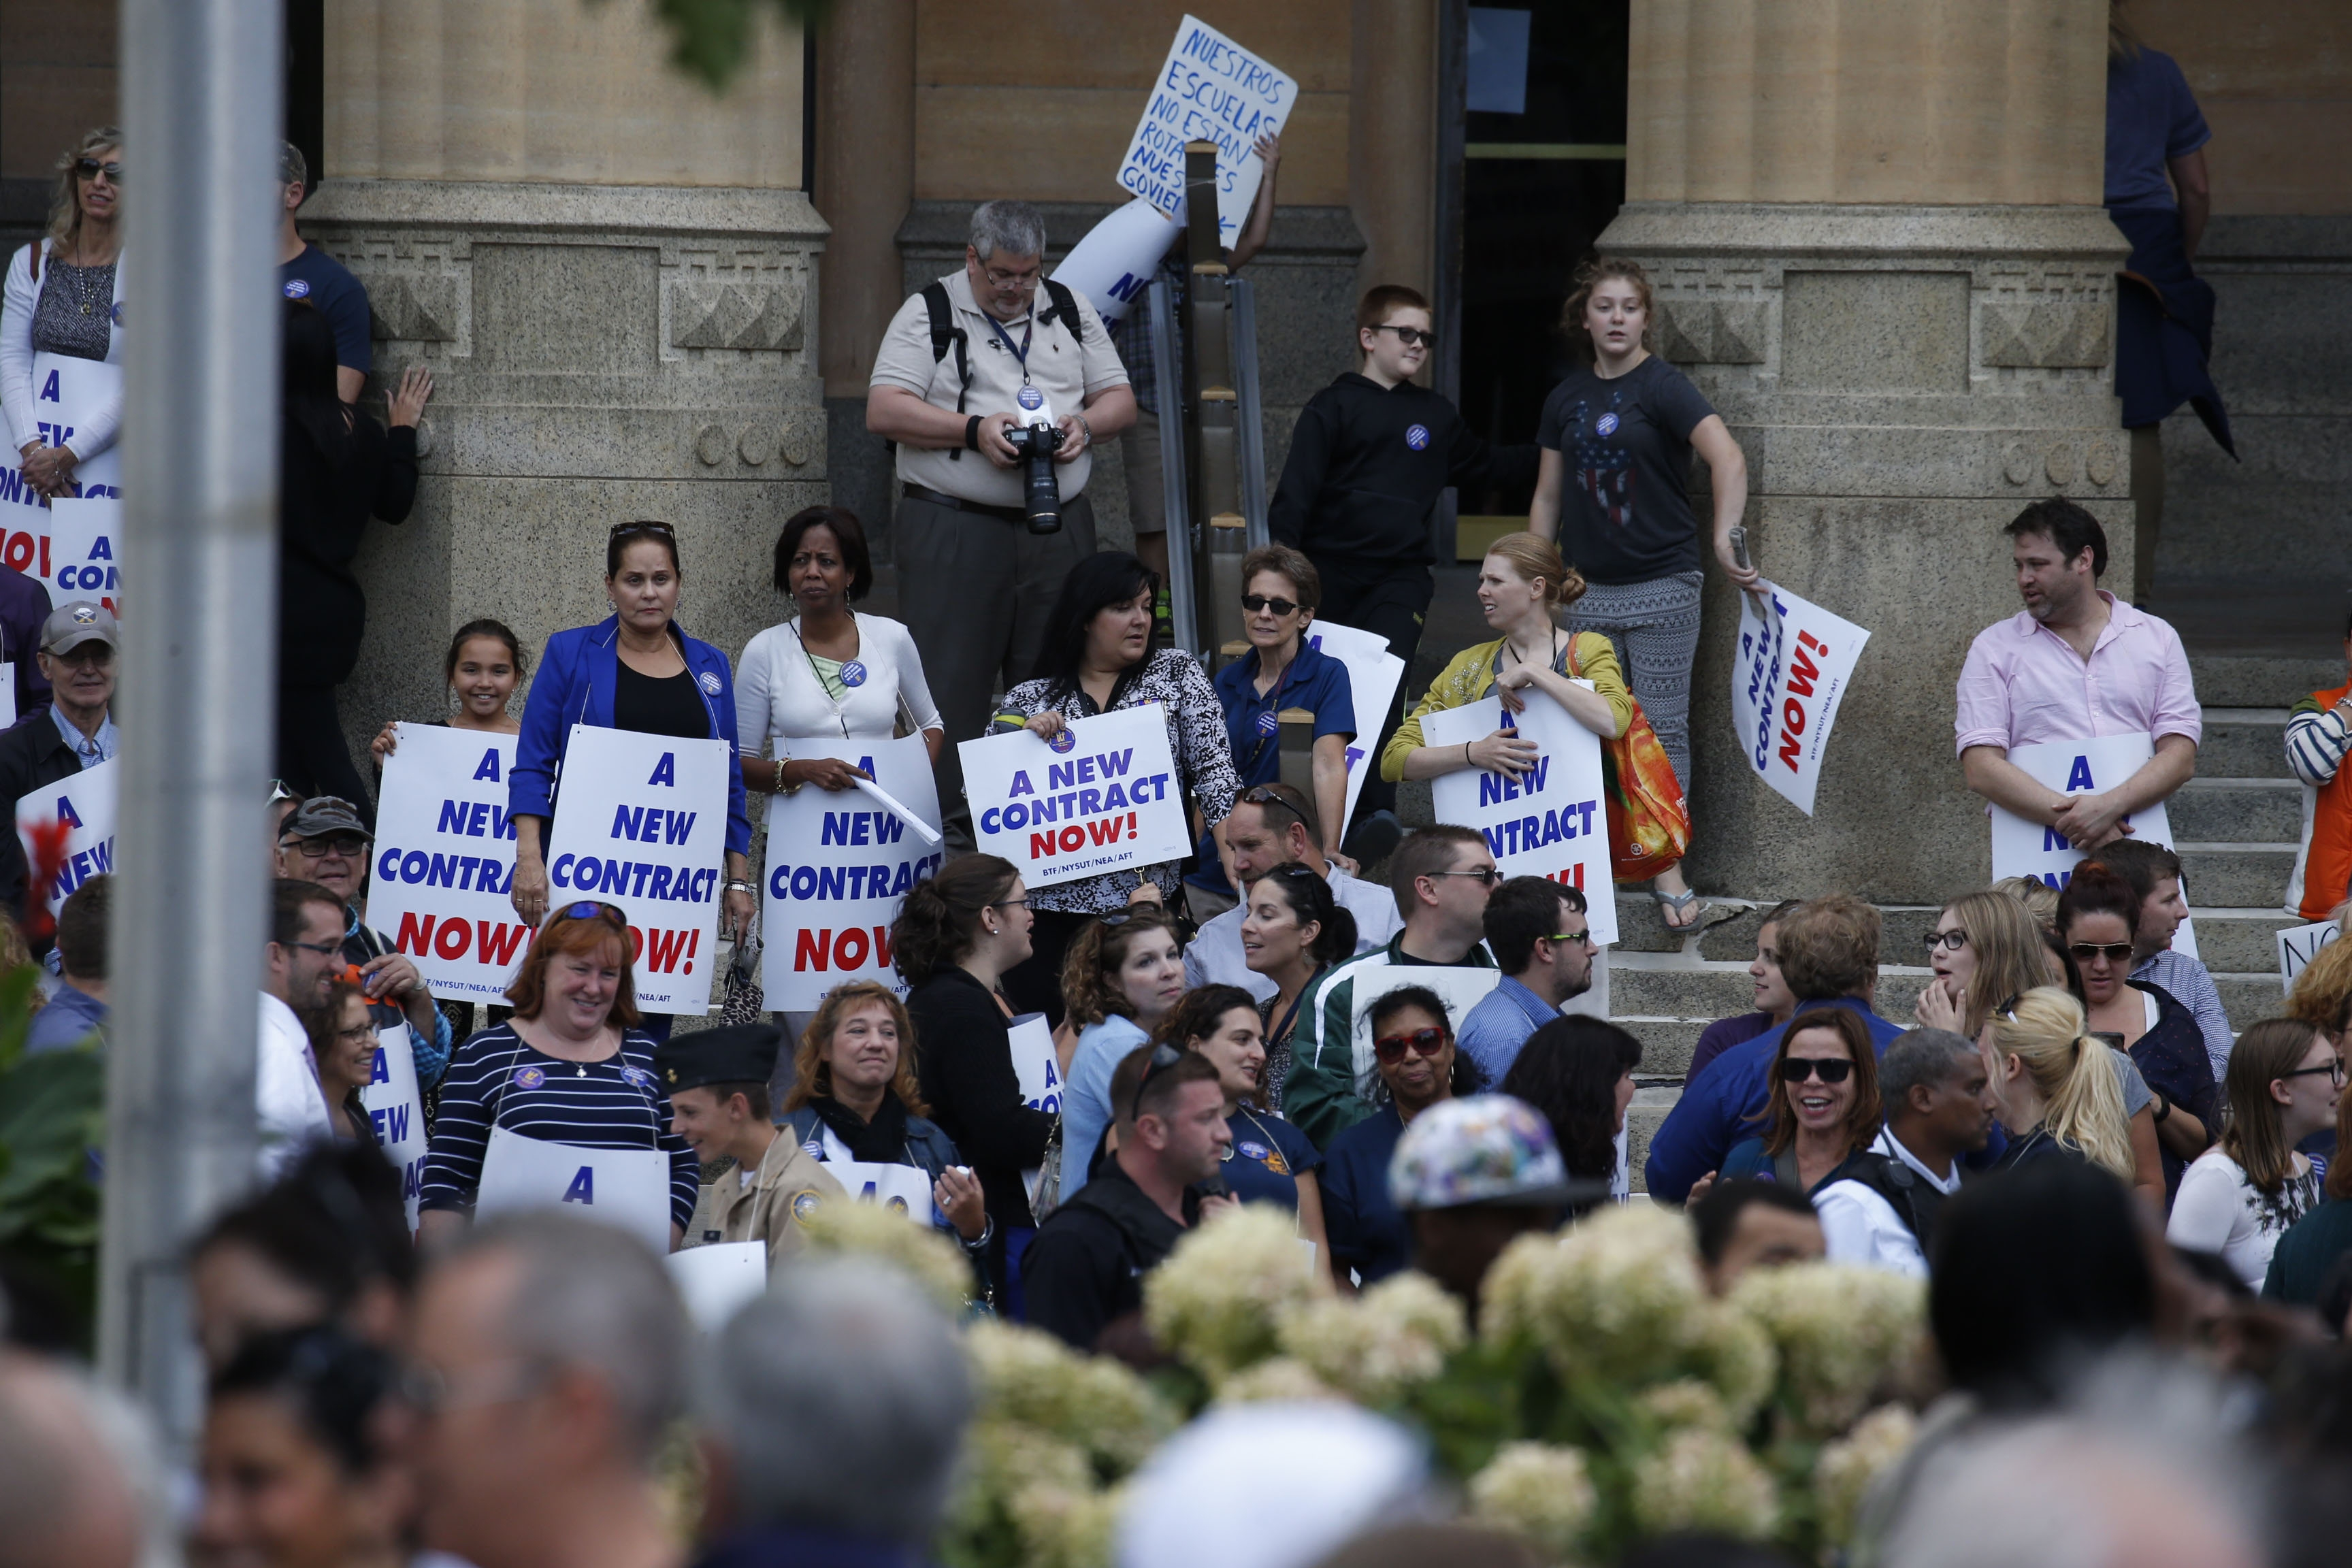 Very well attended gathering at the Buffalo Teacher Federation rally and protest in Niagara Square on Wednesday, Sept. 28, 2016.  (Robert Kirkham/Buffalo News)